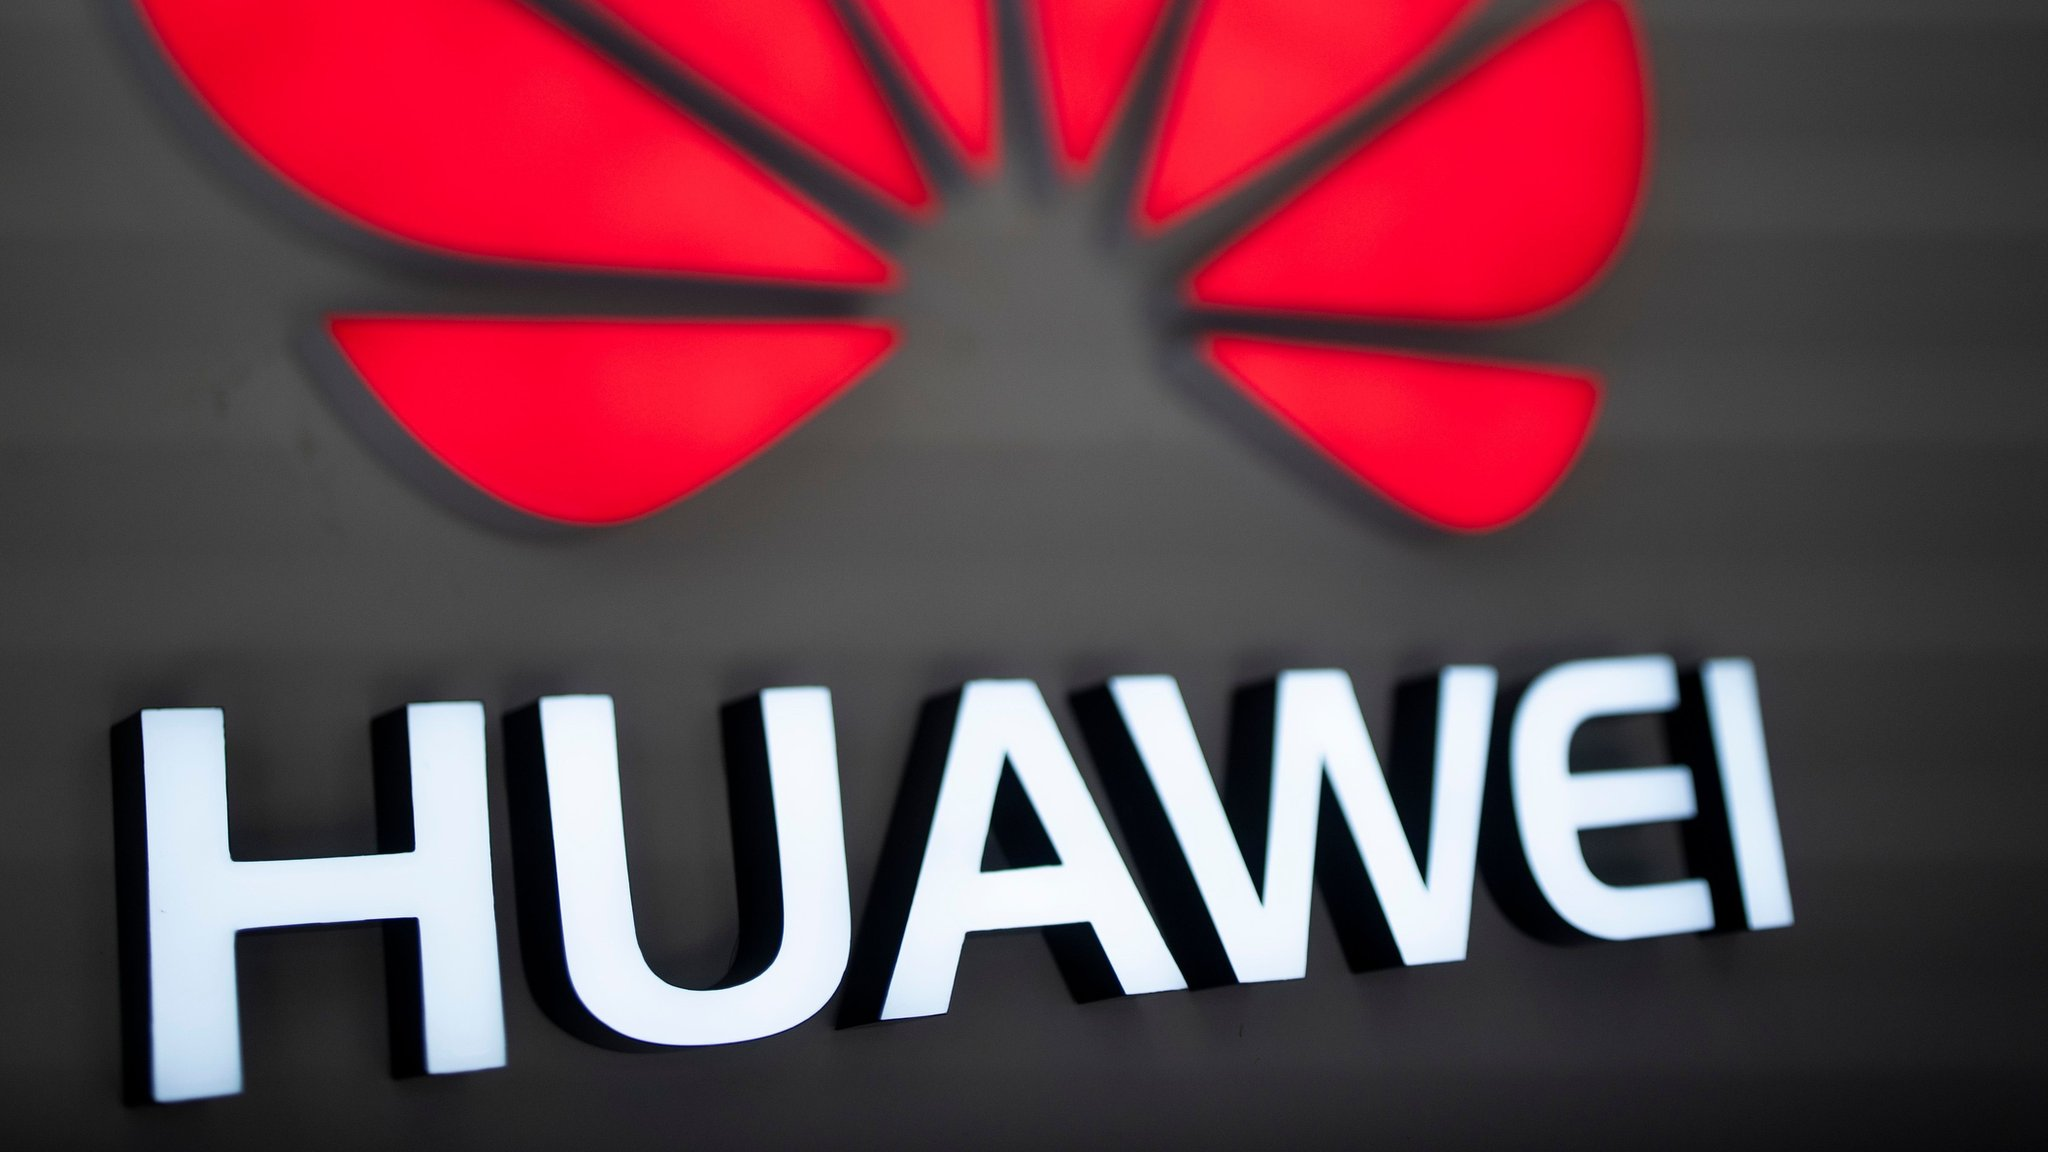 What's going on with Huawei?